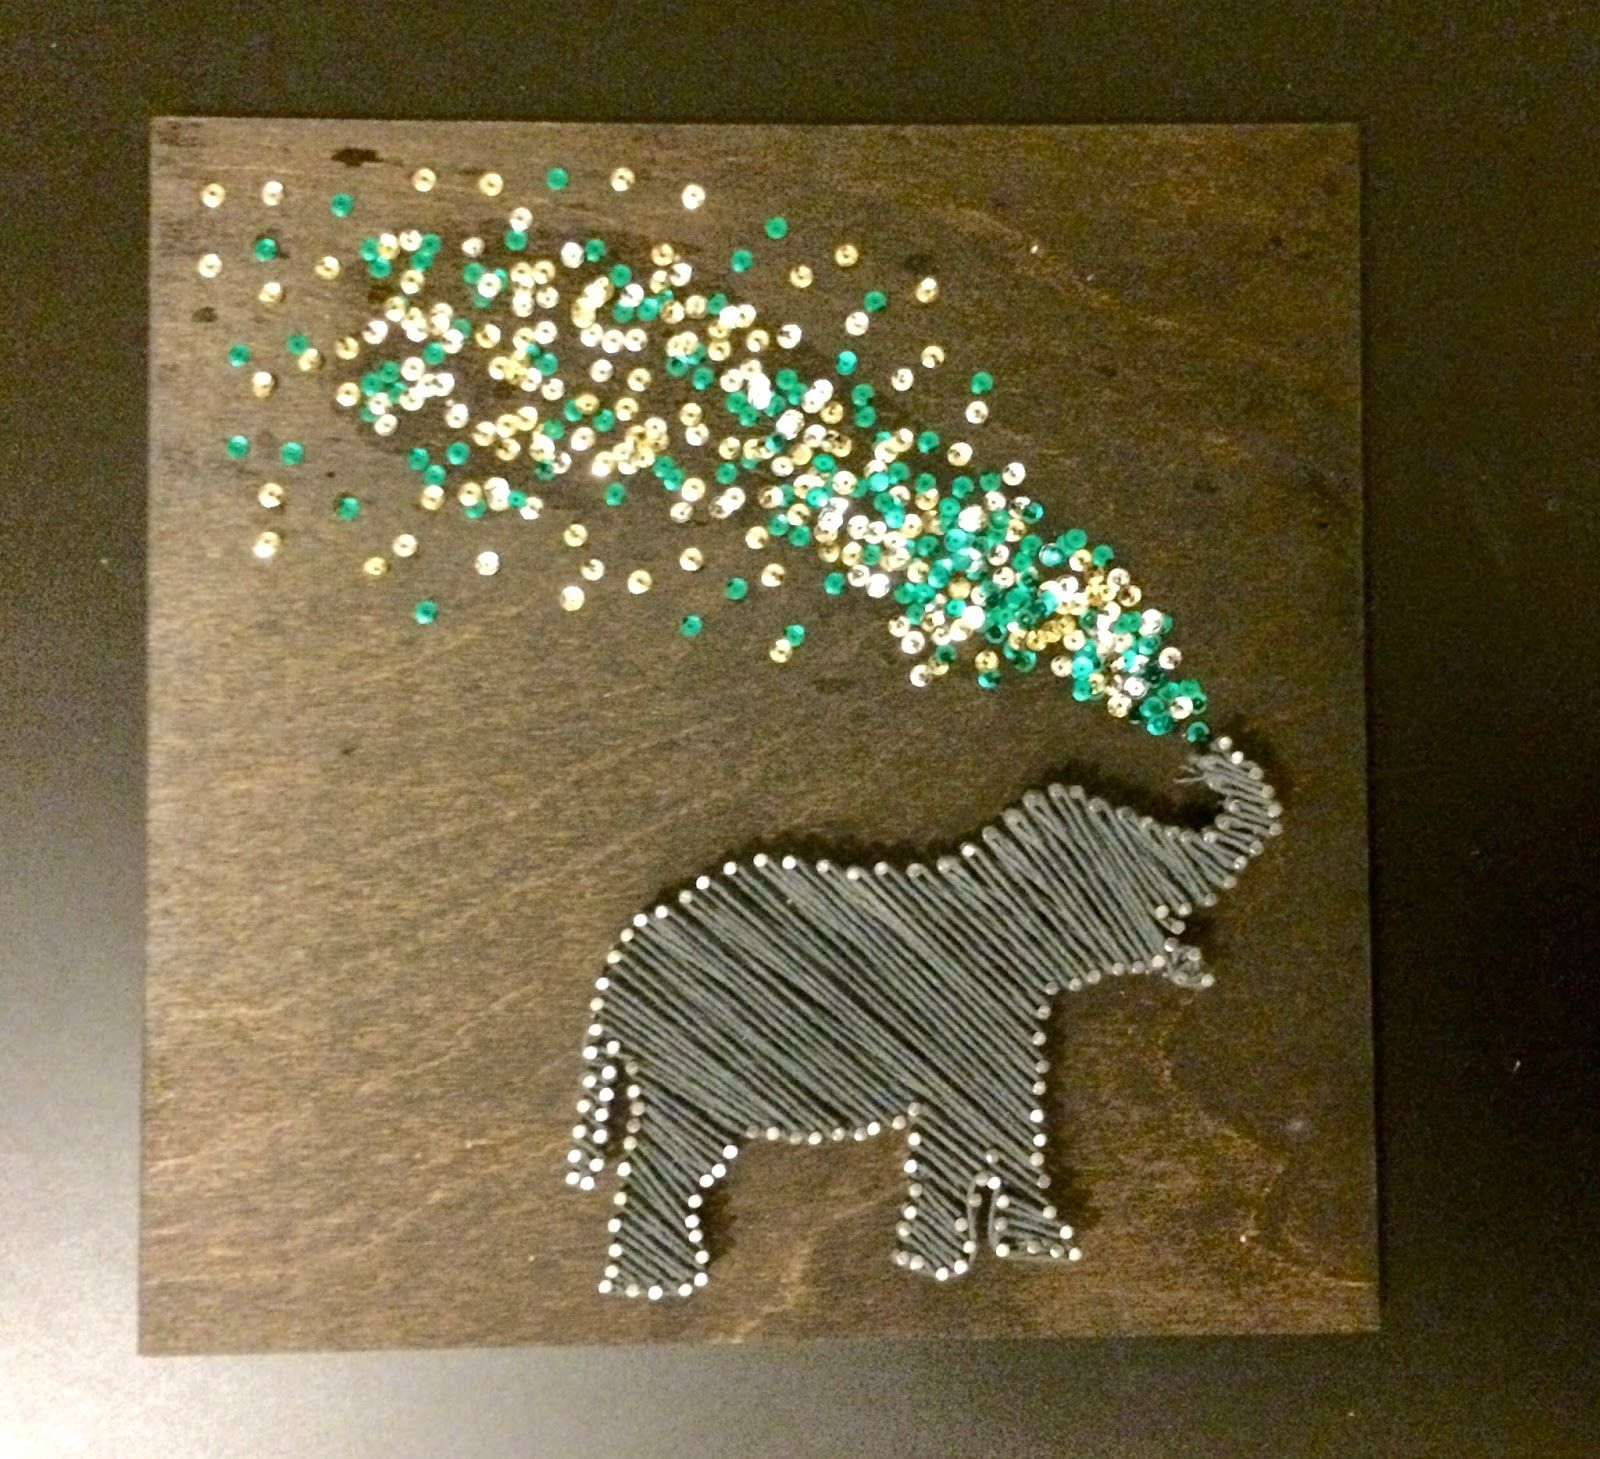 Tackling The String Art Elephant The First Installment In My Blog